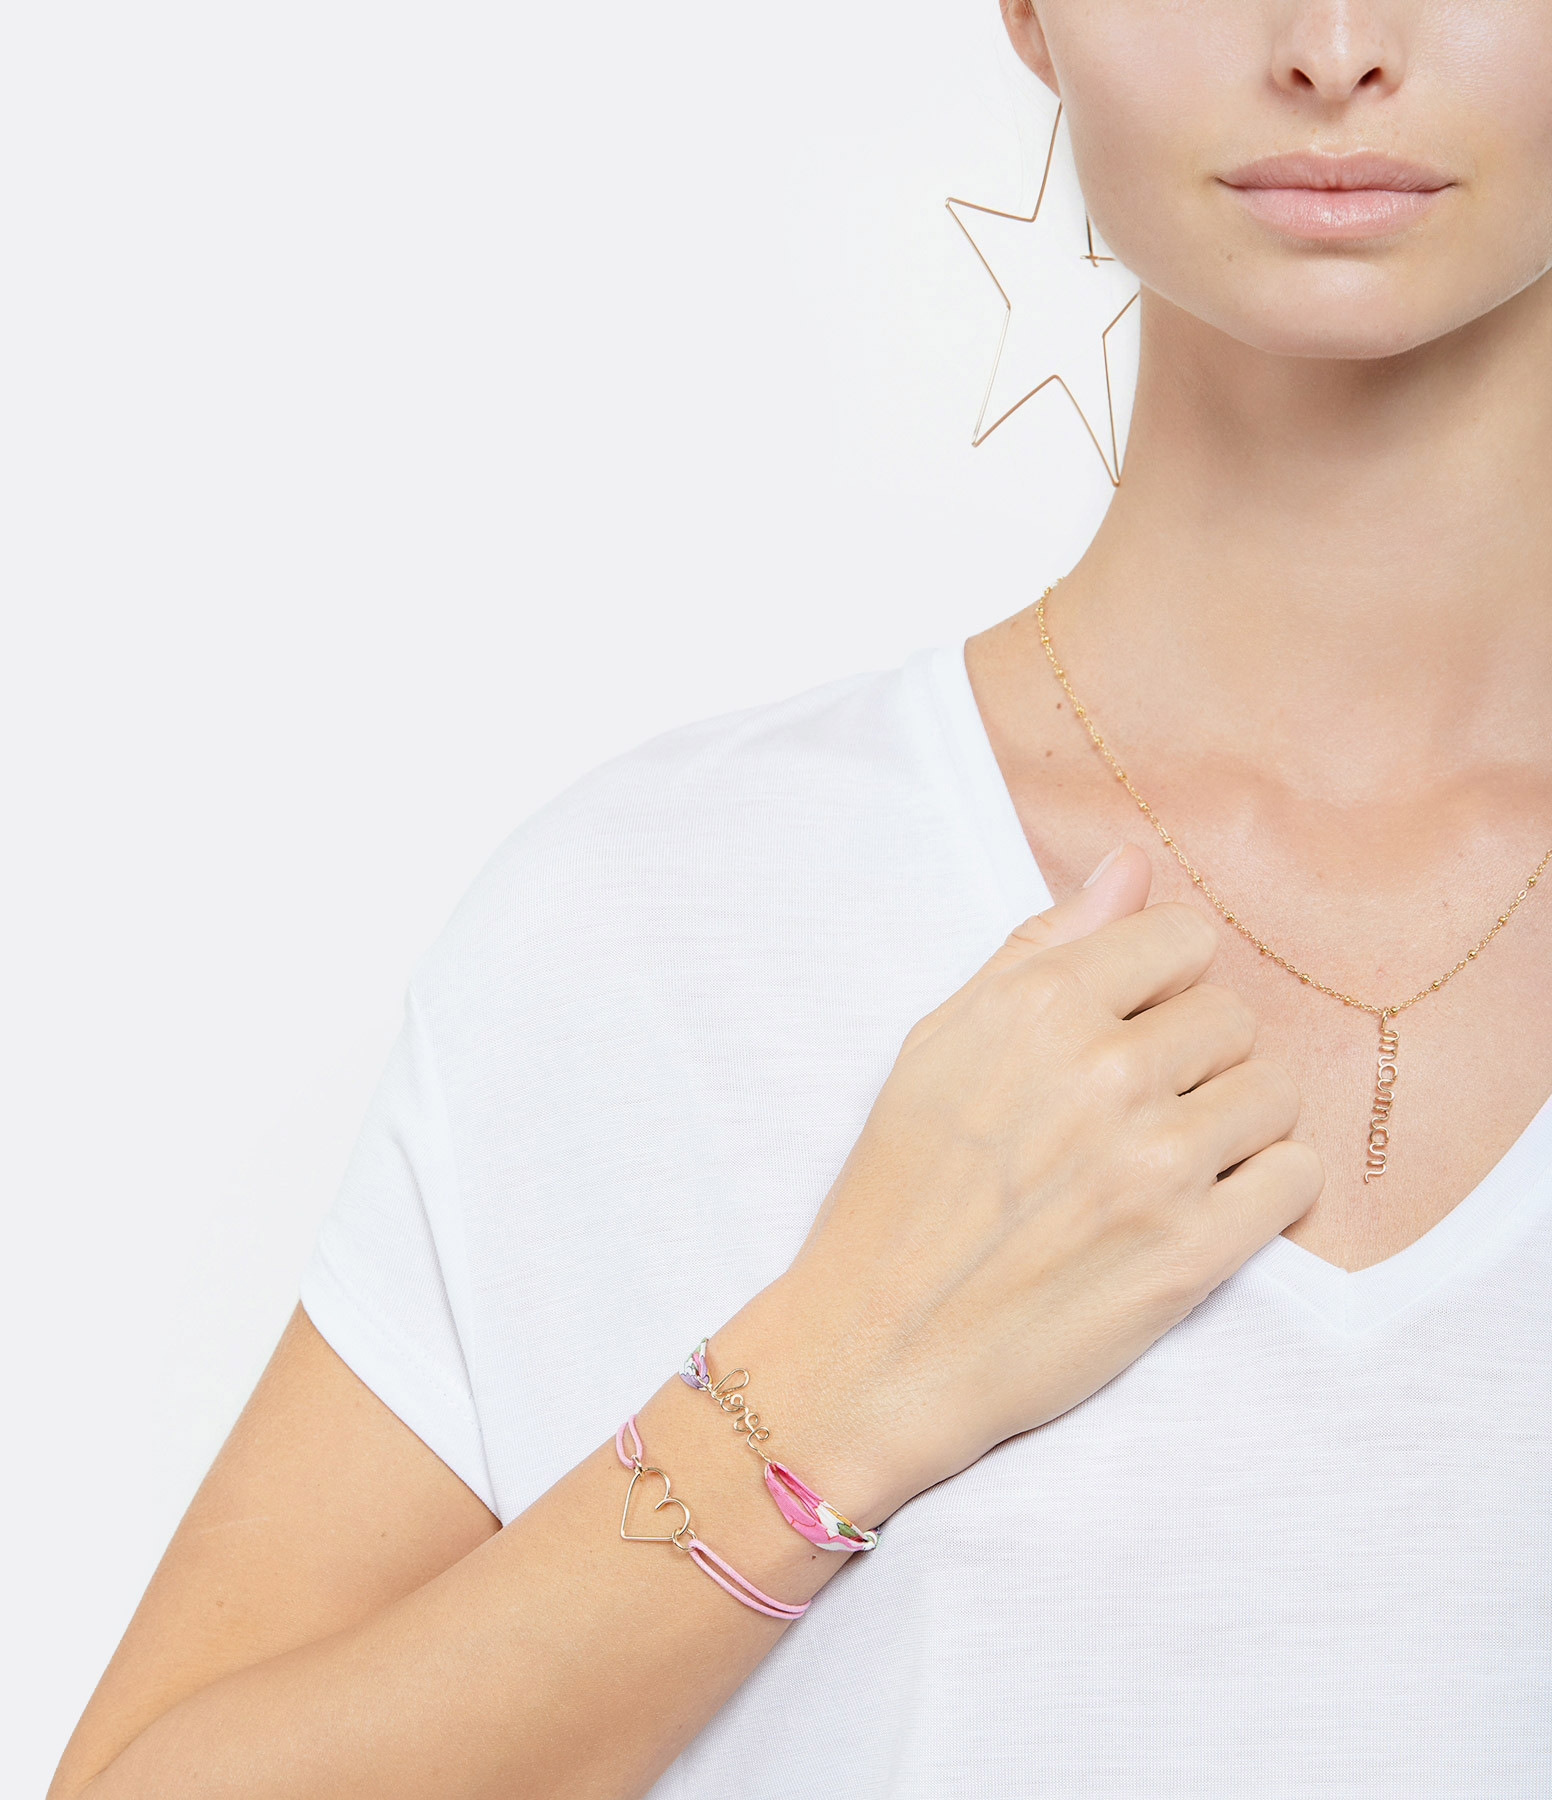 ATELIER PAULIN - Bracelets Duo Love Coeur Gold Filled 14K Fuchsia